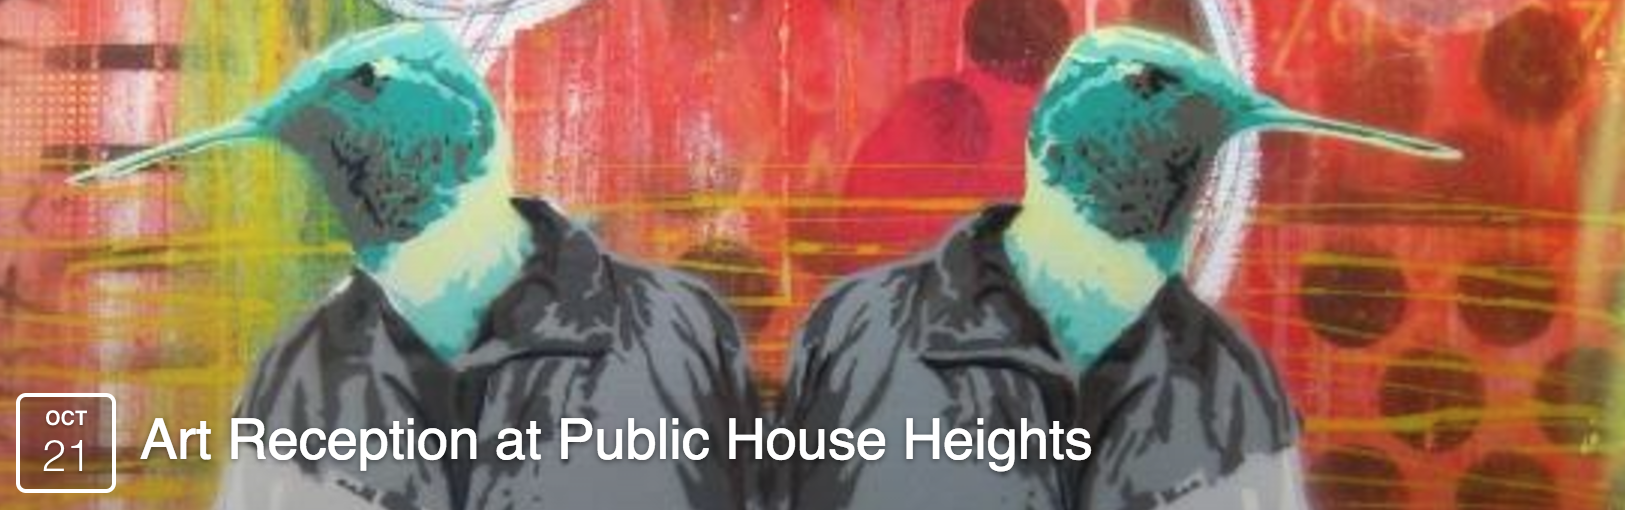 Art Reception at Public House Heights